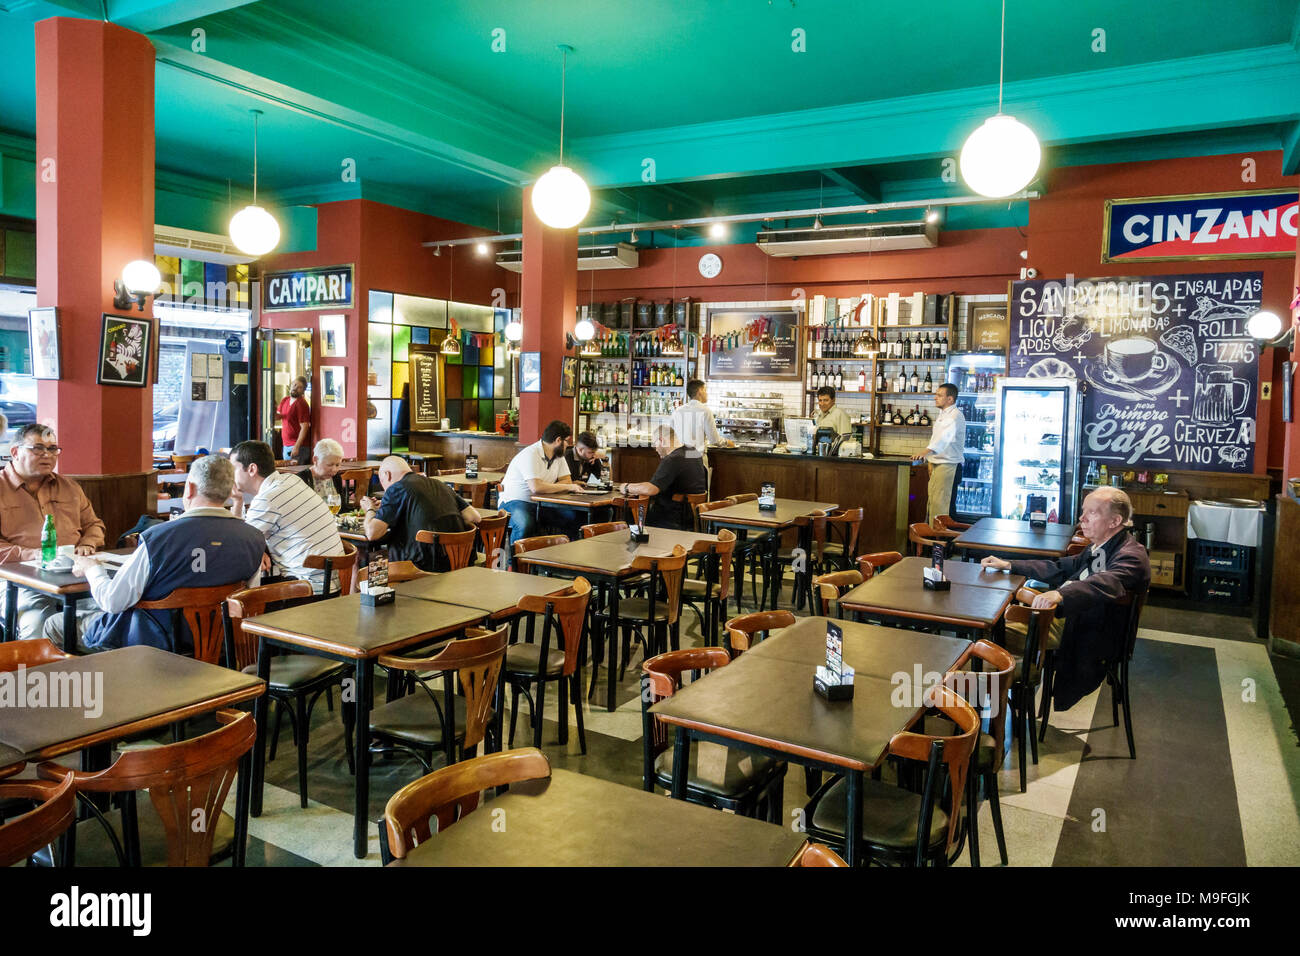 Argentinean Restaurant Stock Photos & Argentinean Restaurant Stock ...